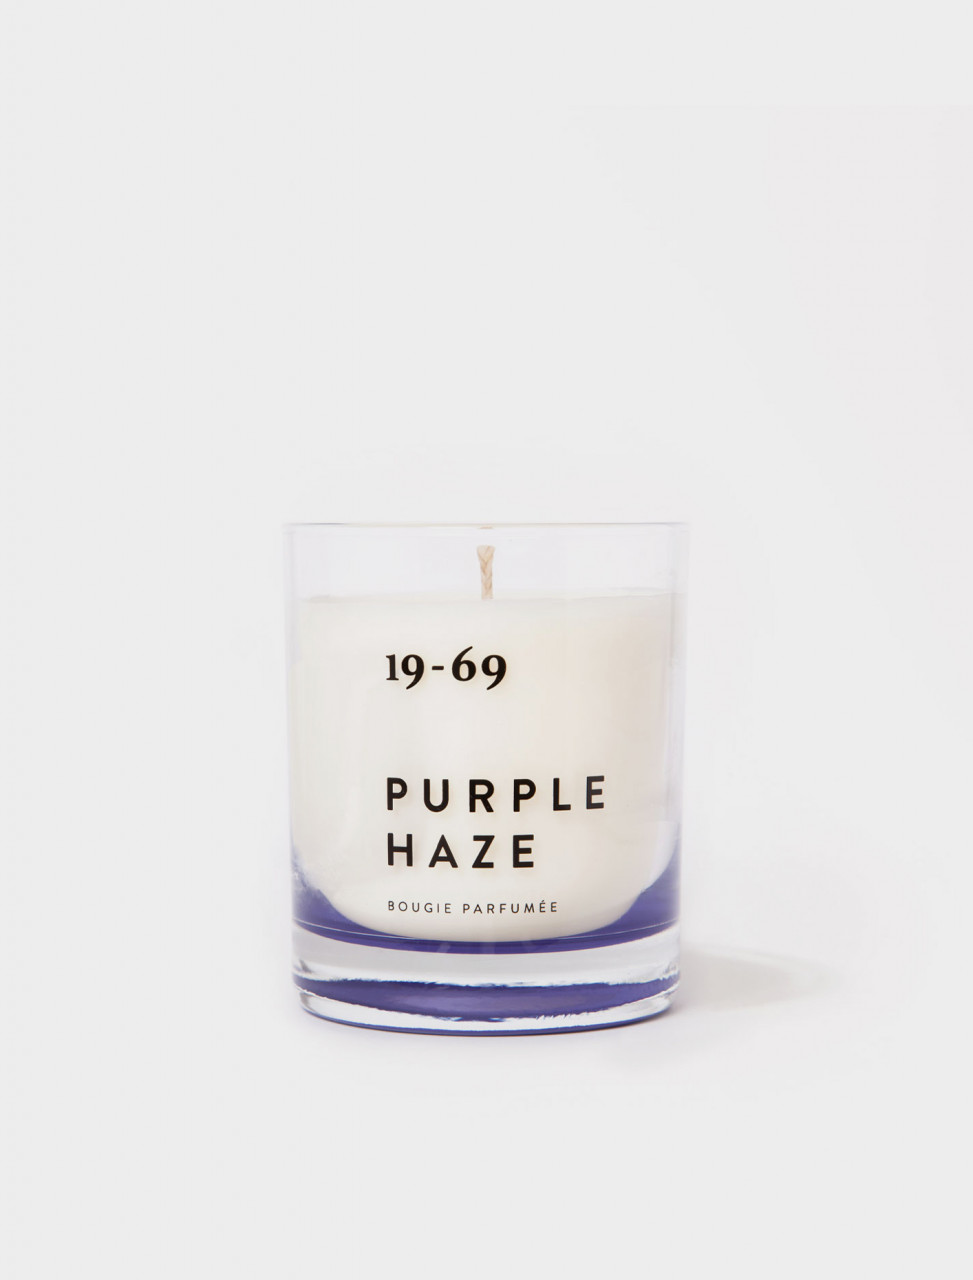 305-900008 19-69 PURPLE HAZE SCENTED CANDLE